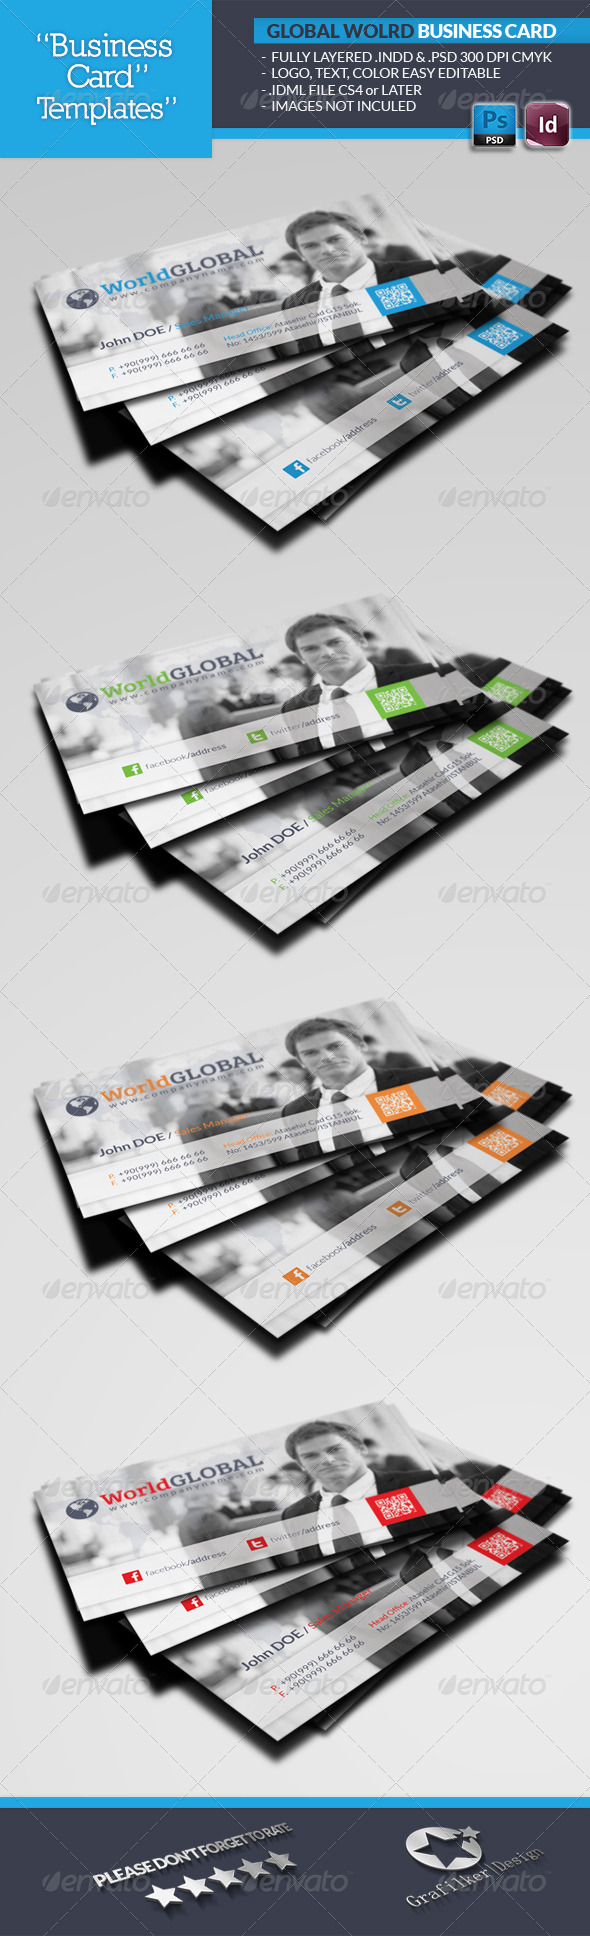 GraphicRiver Global World Business Card Template 4811602